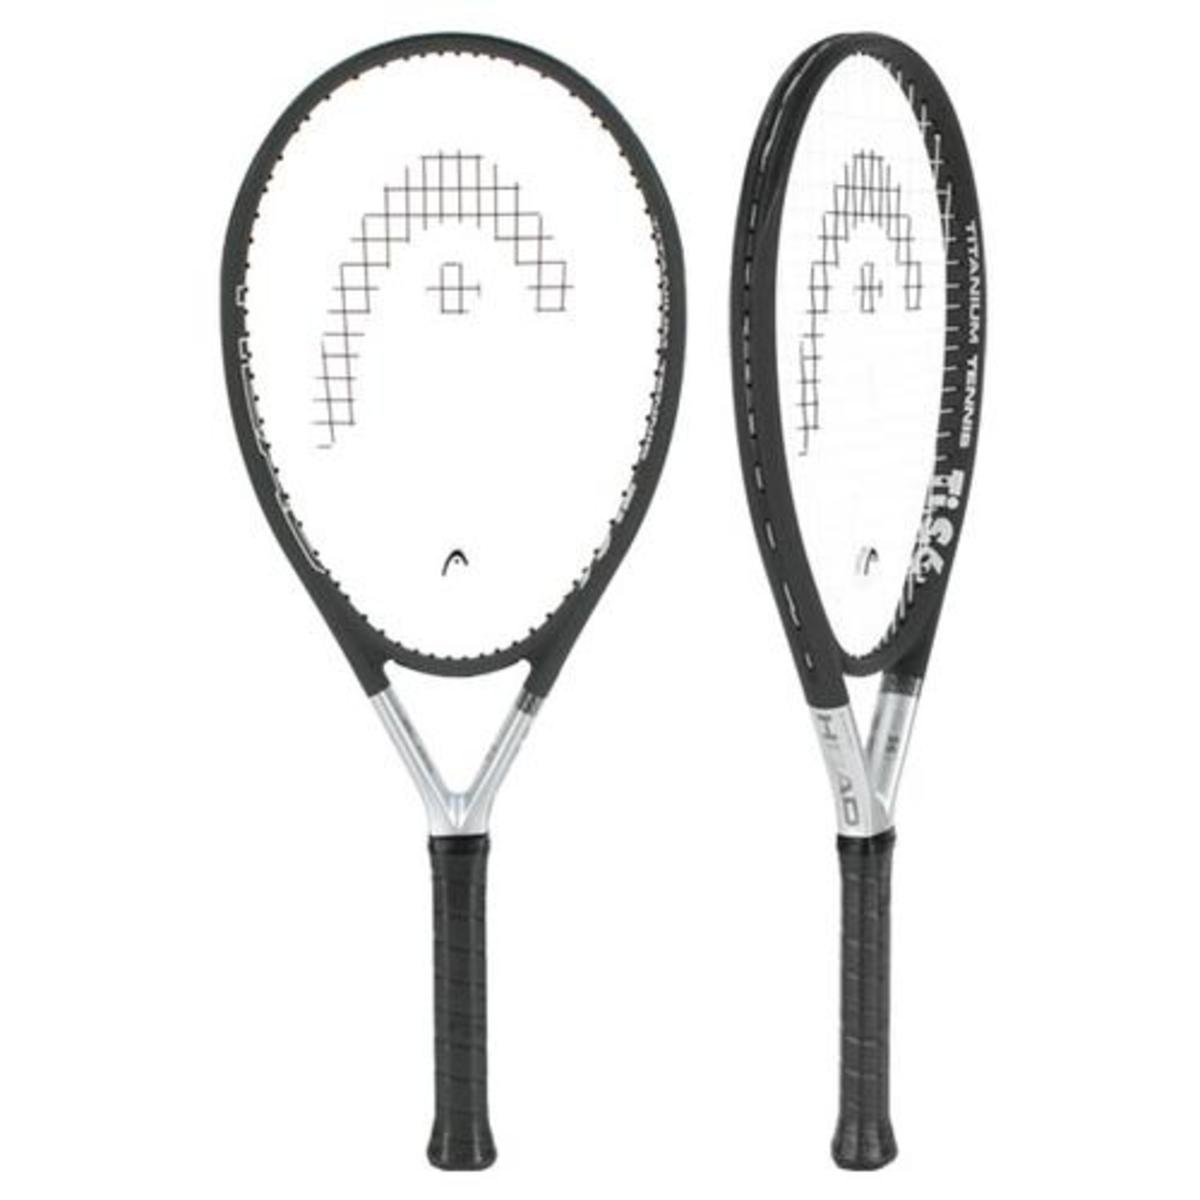 A long, light racket with a large head, the Ti.S6 is nonetheless a super comfortable racket to play with. It has a nice mix of large sweet spot, maneuverability and power.